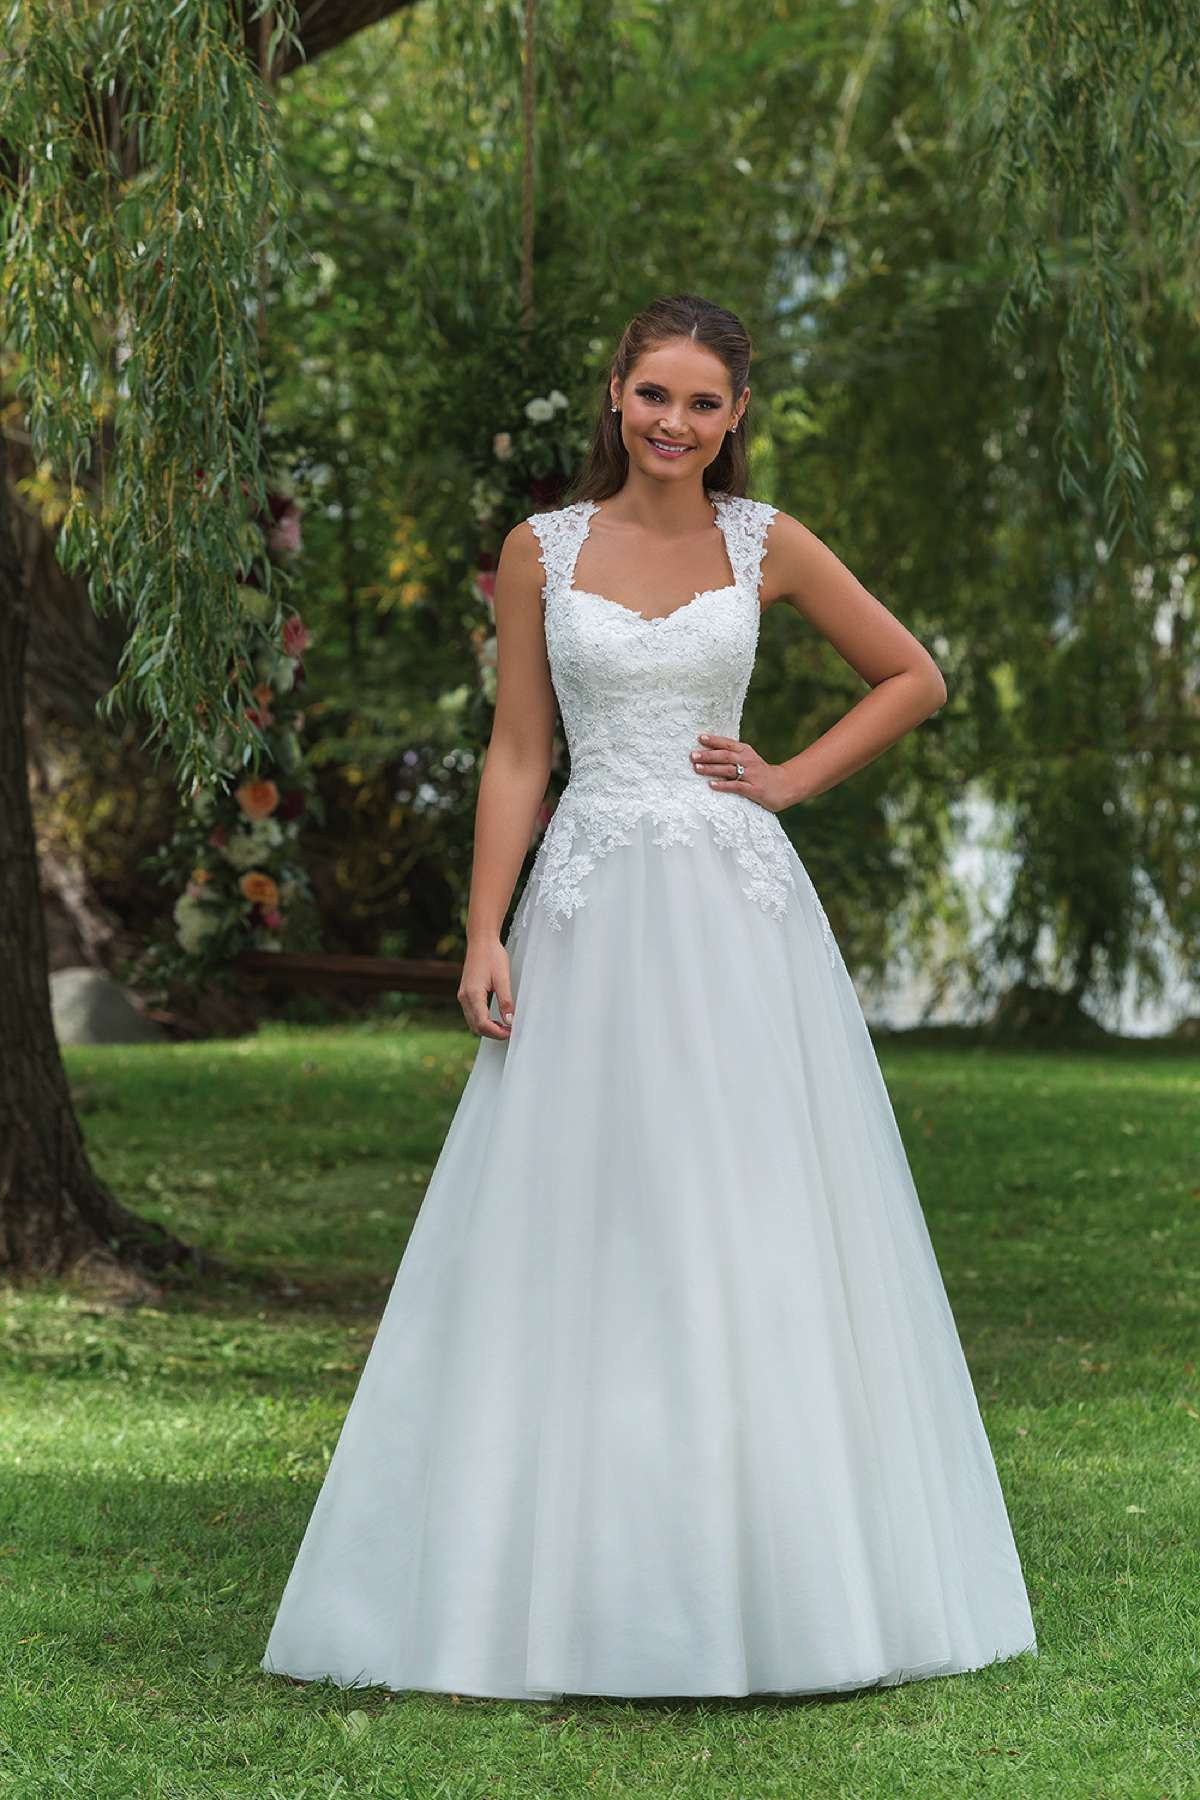 New bridal designs from Sweetheart Gowns - Love Our Wedding